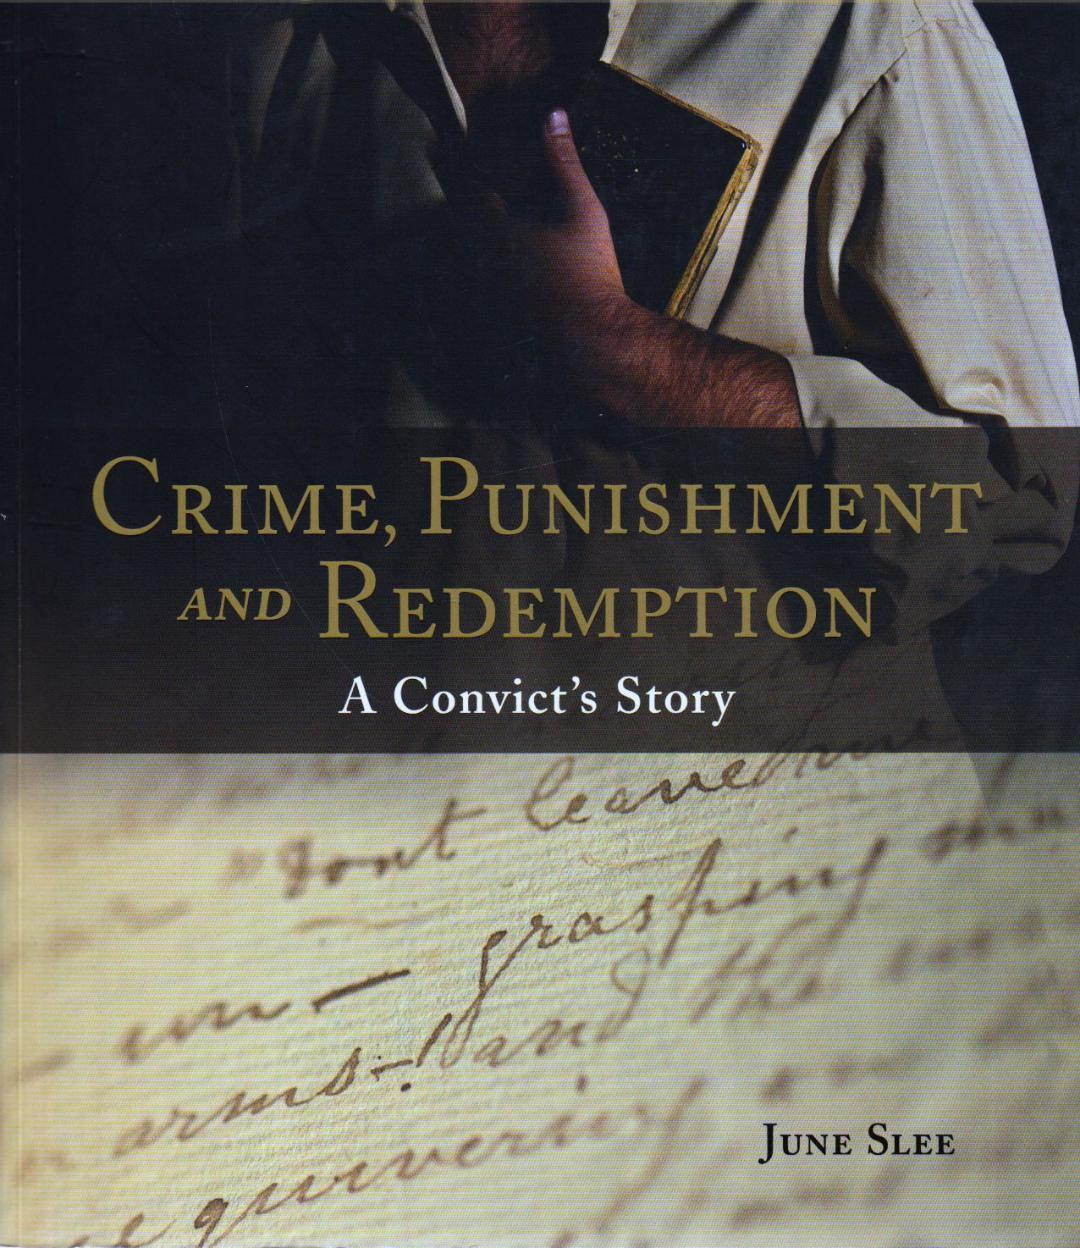 Crime, Punishment and Redemption - A Convict's Story